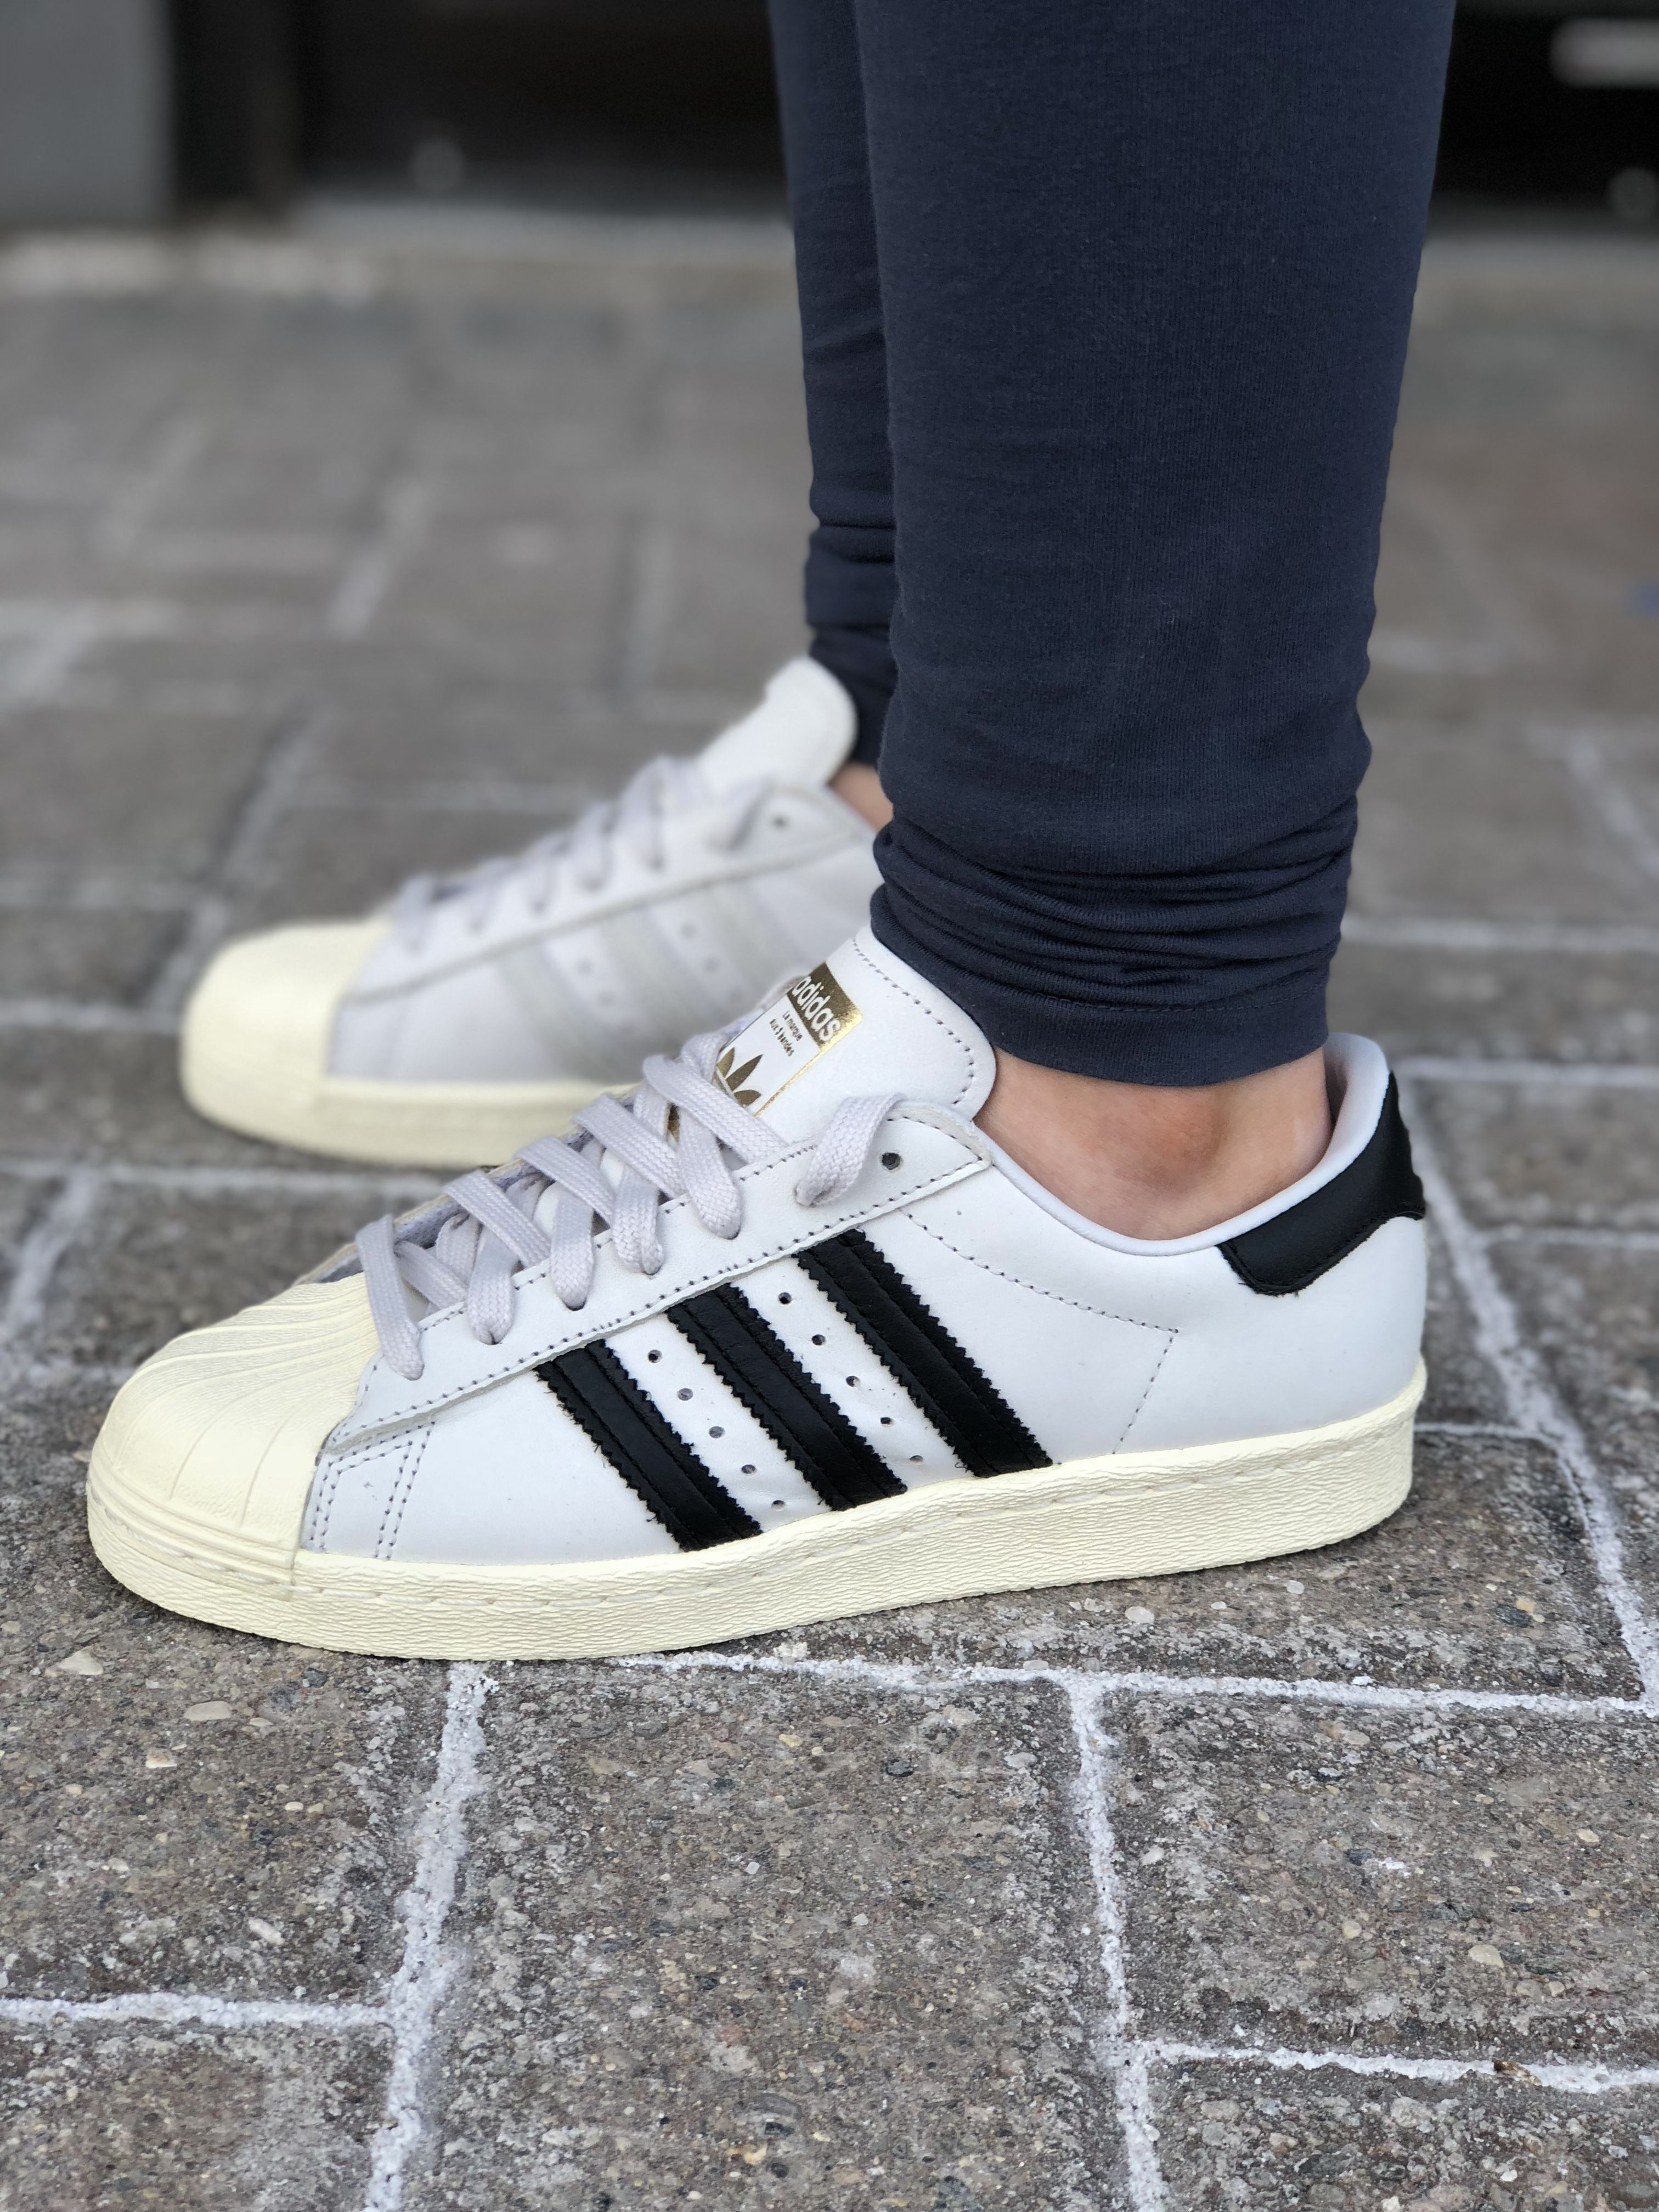 9fa88fabd Spring 2018 Collection Womens Adidas Superstar 80s